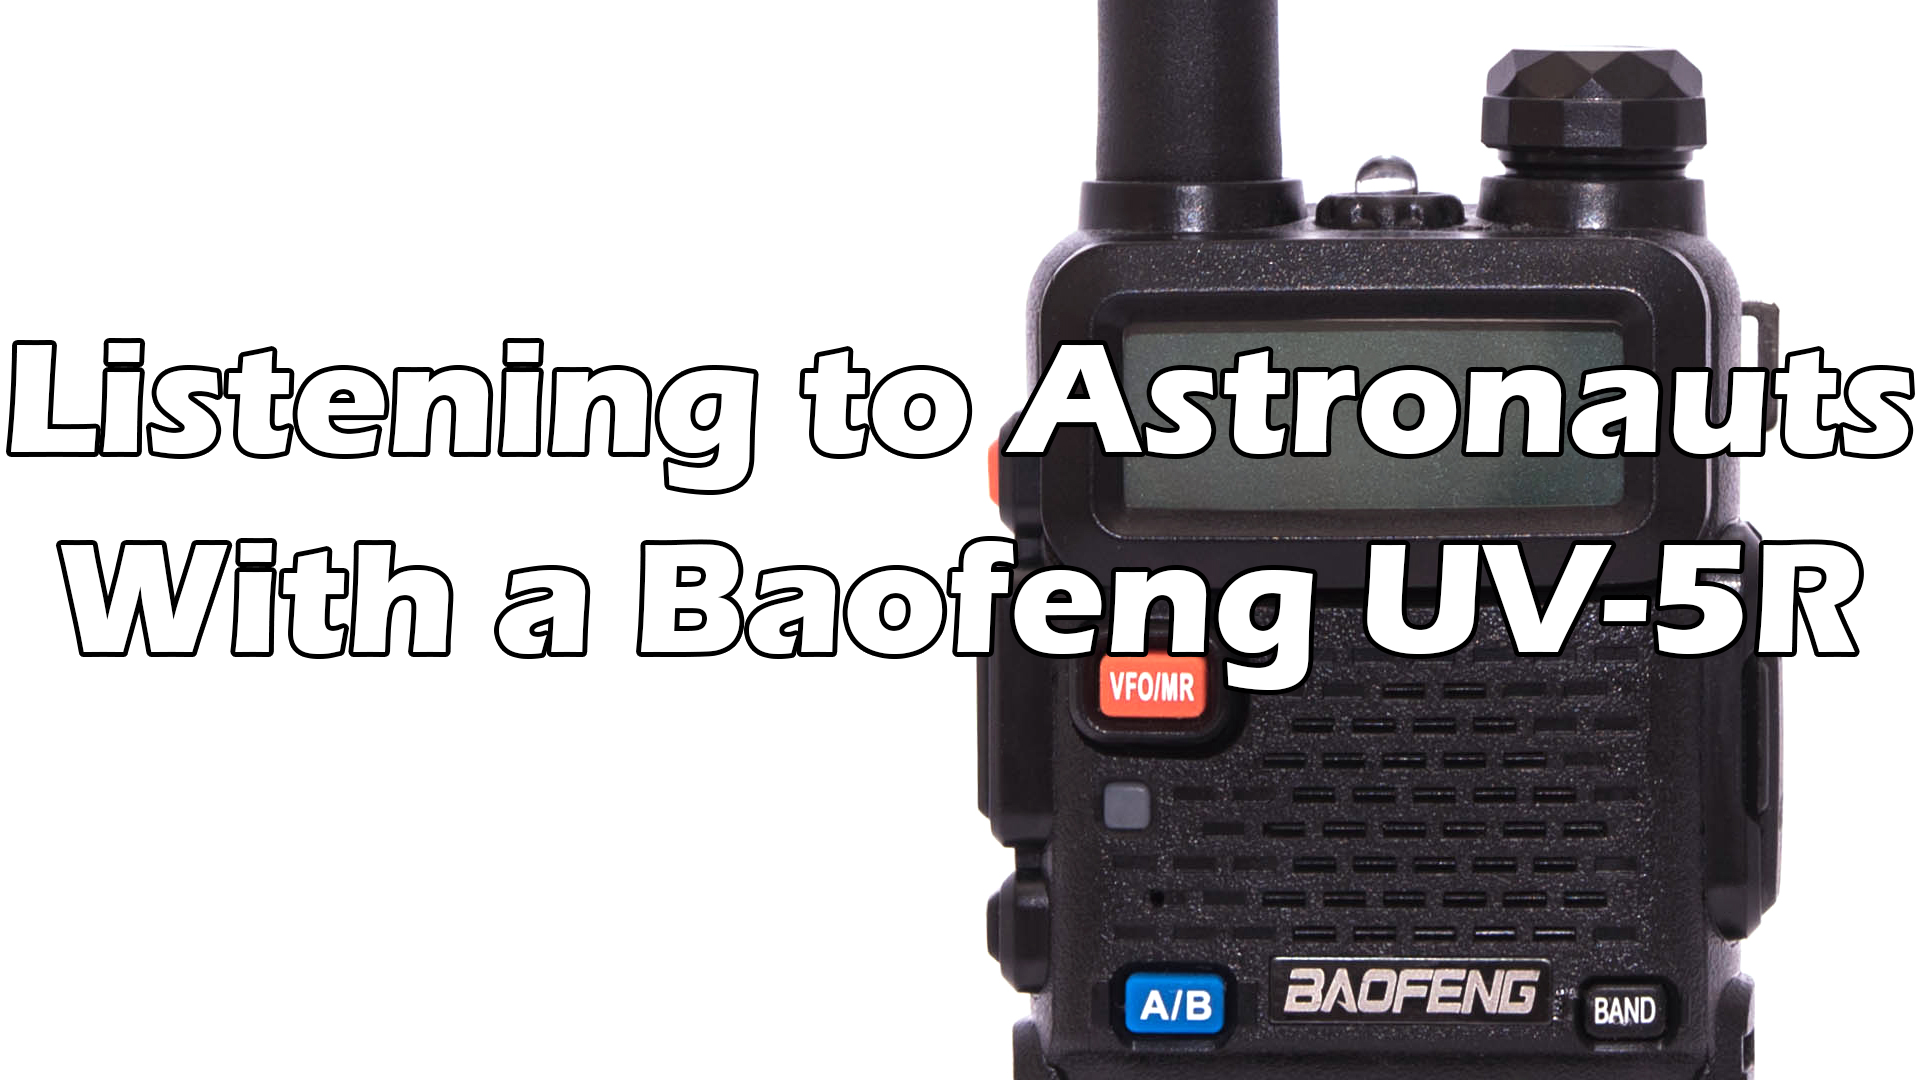 Listening to Astronauts ON THE ISS with a Baofeng UV-5R